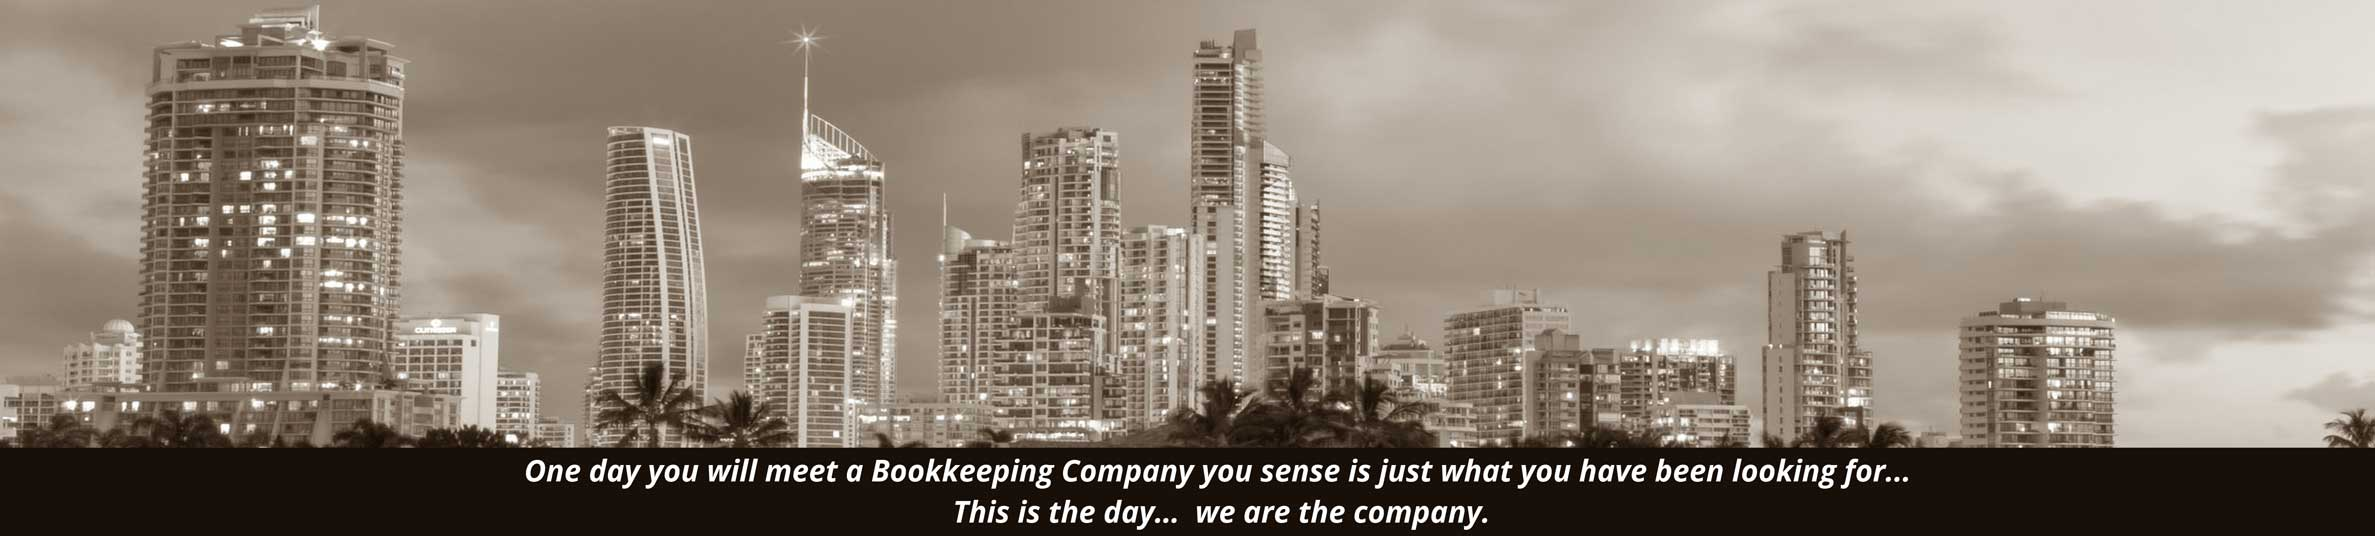 Strictly Bookkeeping | Brisbane Australia | Bookkeeping Services | Payroll | Debtor | Creditor | BAS | Bookkeeping Professionals